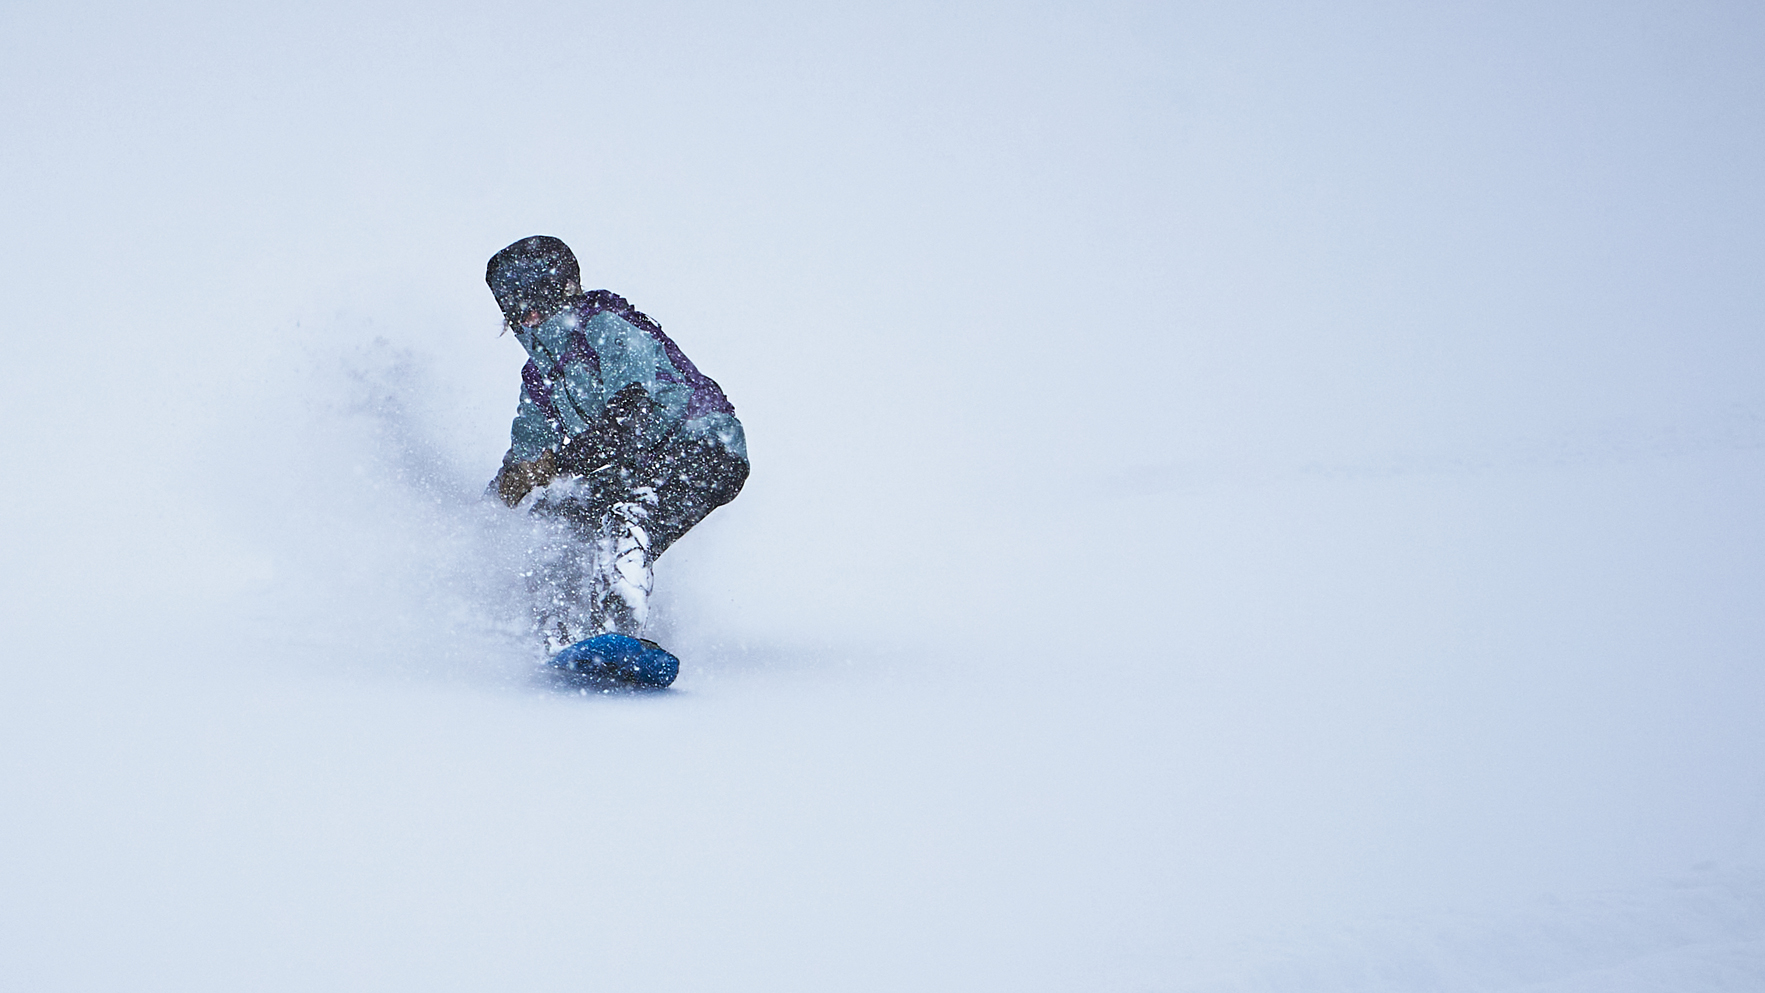 Backcountry snowboarder in green jacket riding deep powder